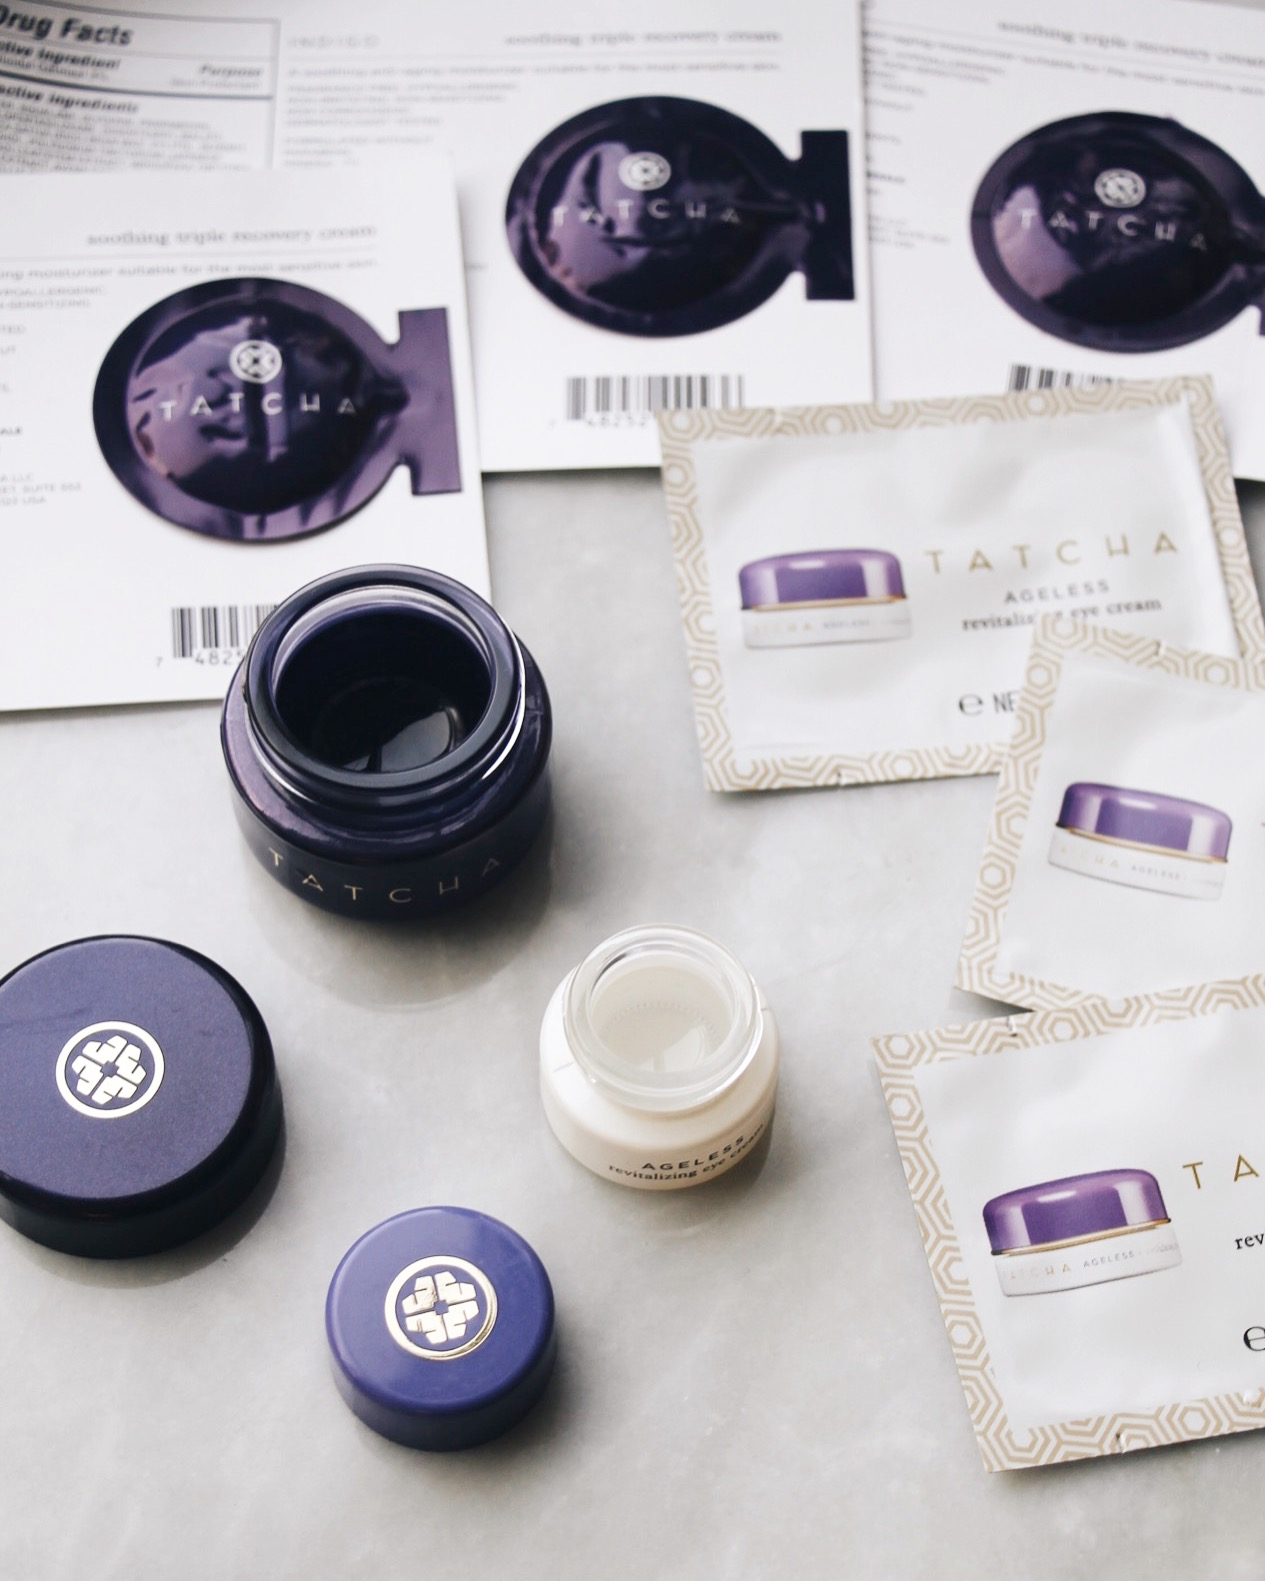 How To Make The Most Out Of Your Beauty Samples, Beauty Samples, Free Samples, Tatcha, Tatcha Samples, Tatcha Eye Cream, How To Get Beauty Samples, Where To Get Beauty Samples